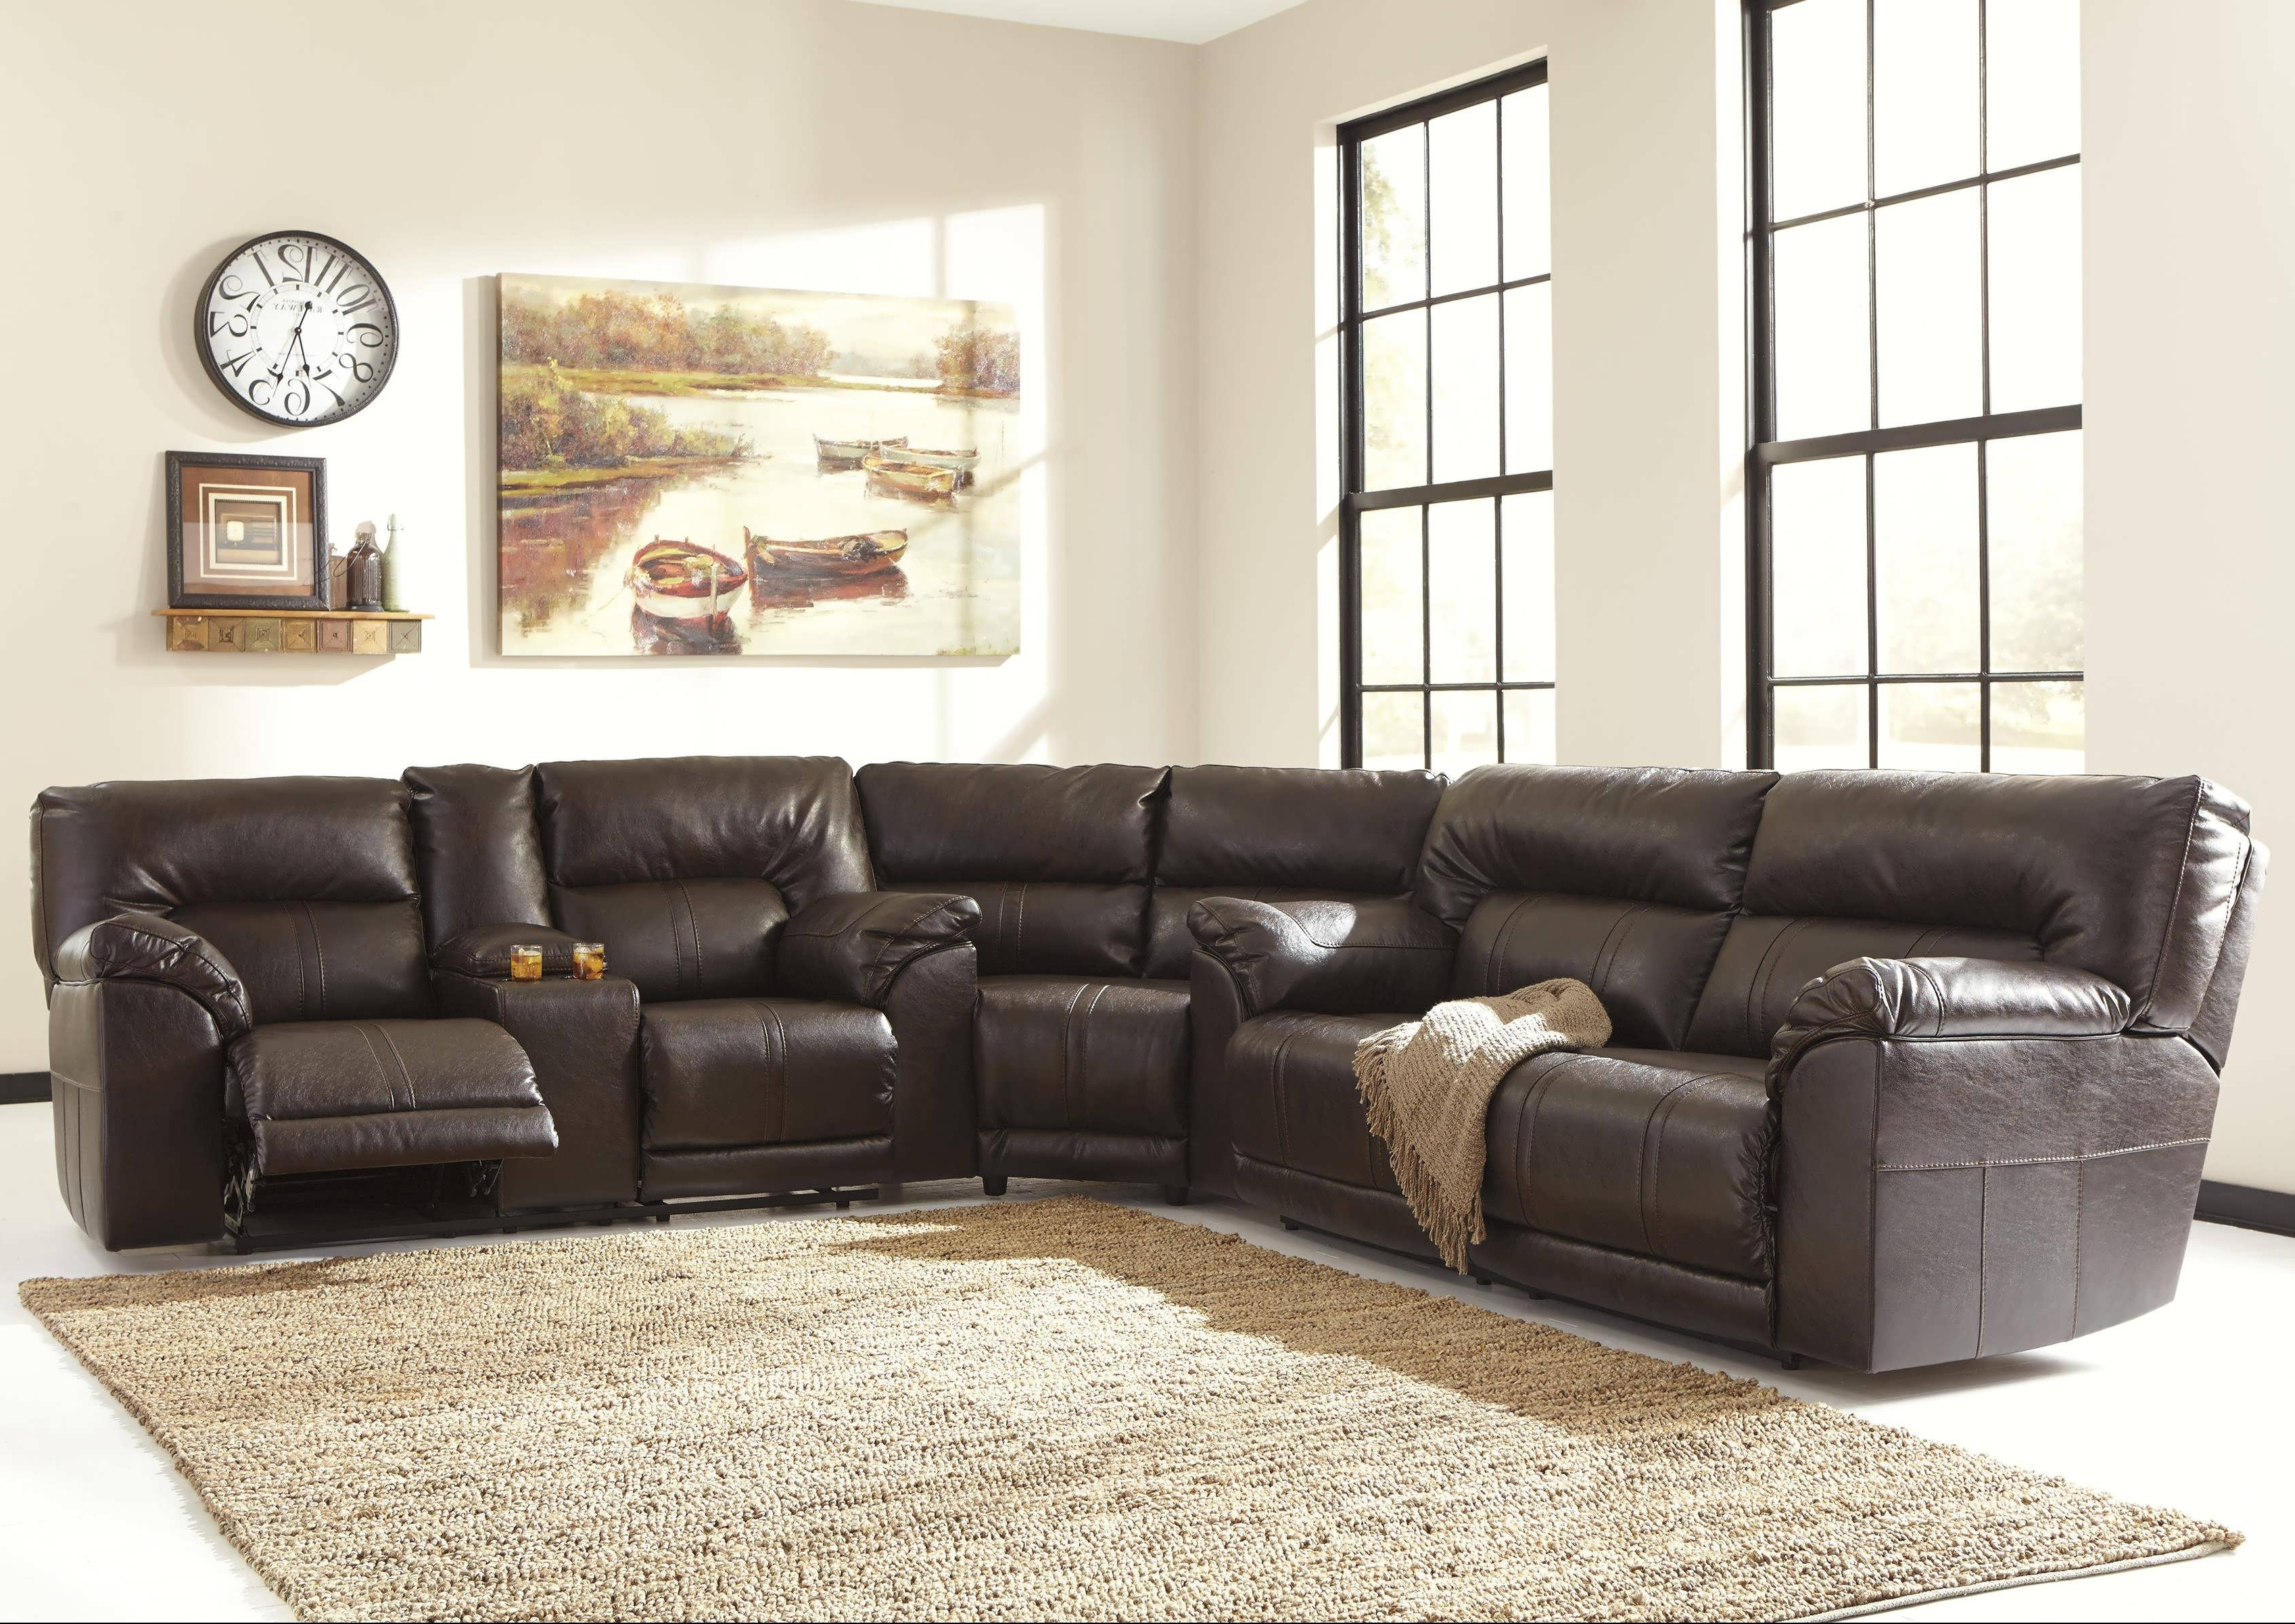 Favorite Sofa : Oversized Sectionals Gray Sectional Leather Sectional Sofa Intended For Genuine Leather Sectionals With Chaise (View 8 of 15)